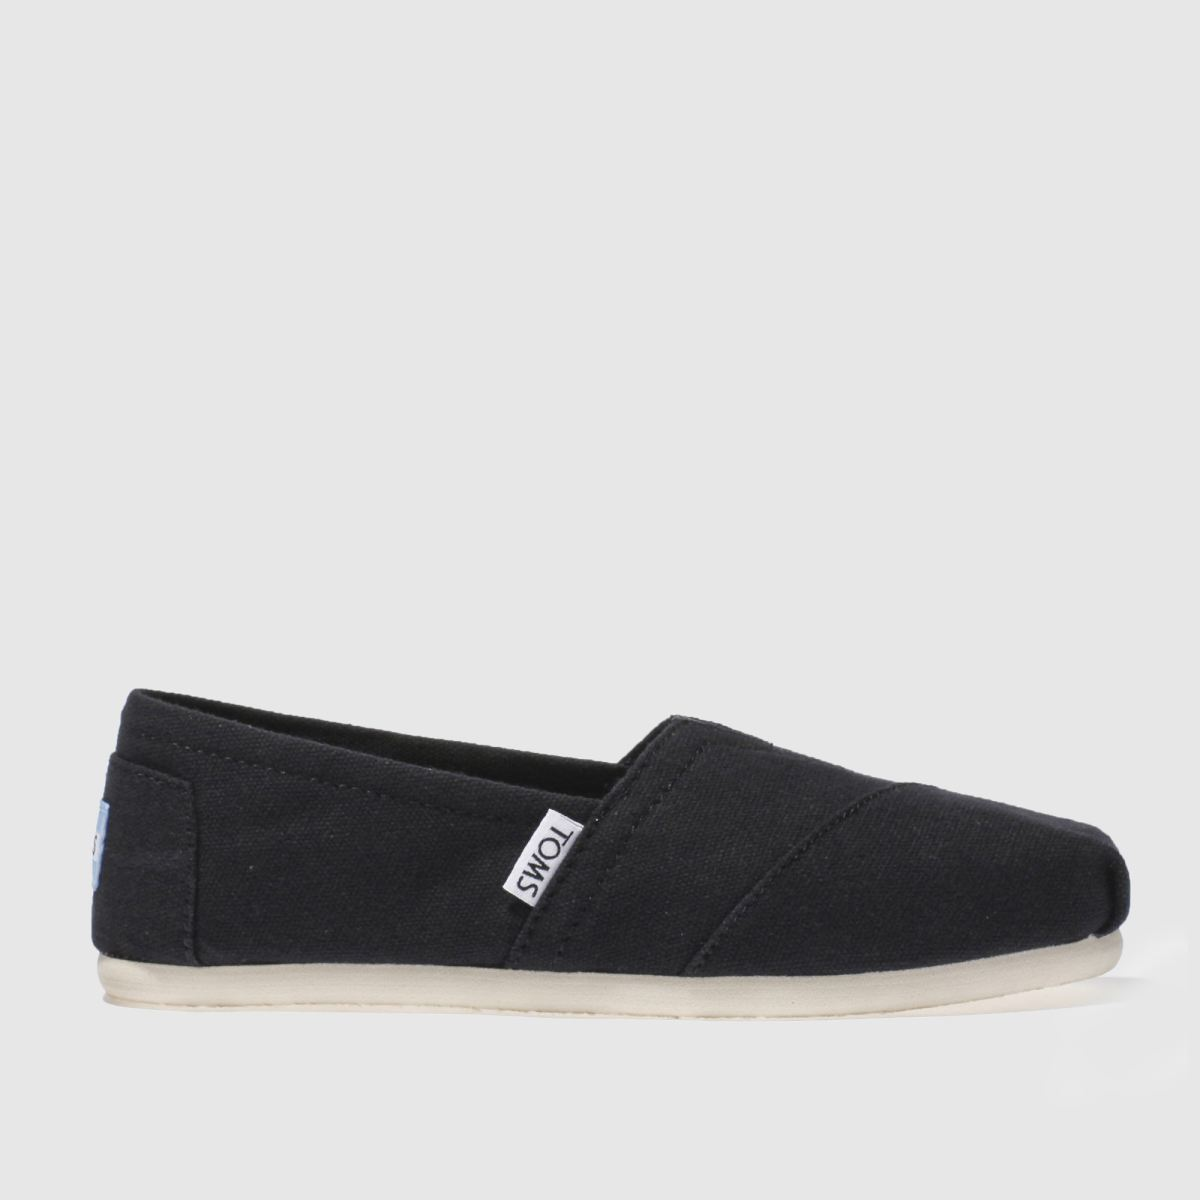 toms black classic slip flat shoes